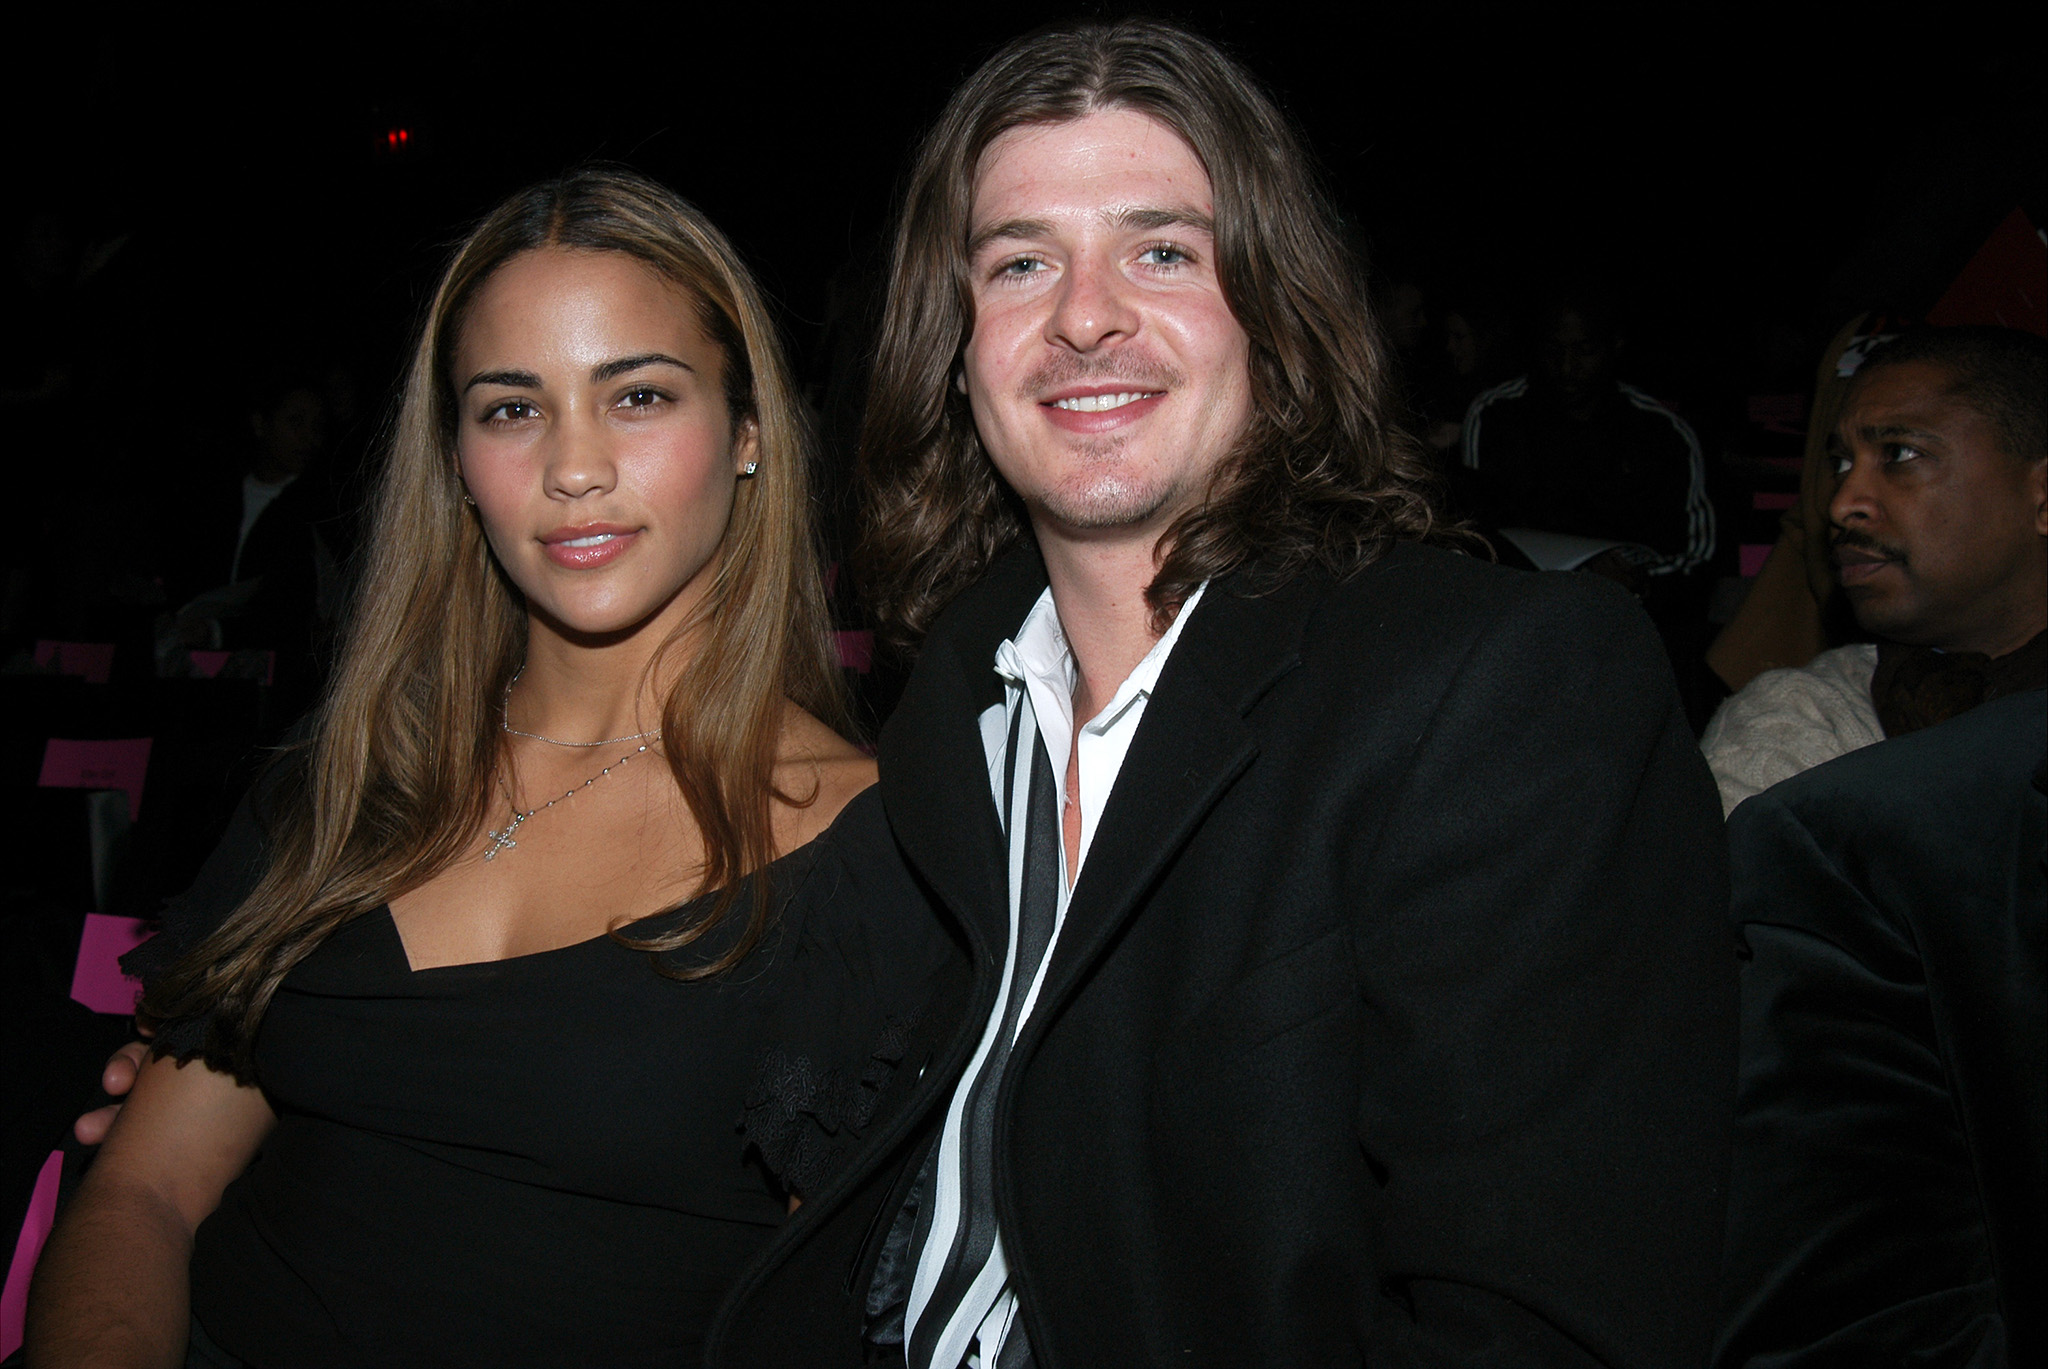 Robin Thicke and Paula Patton 10 years ago (Getty Images)